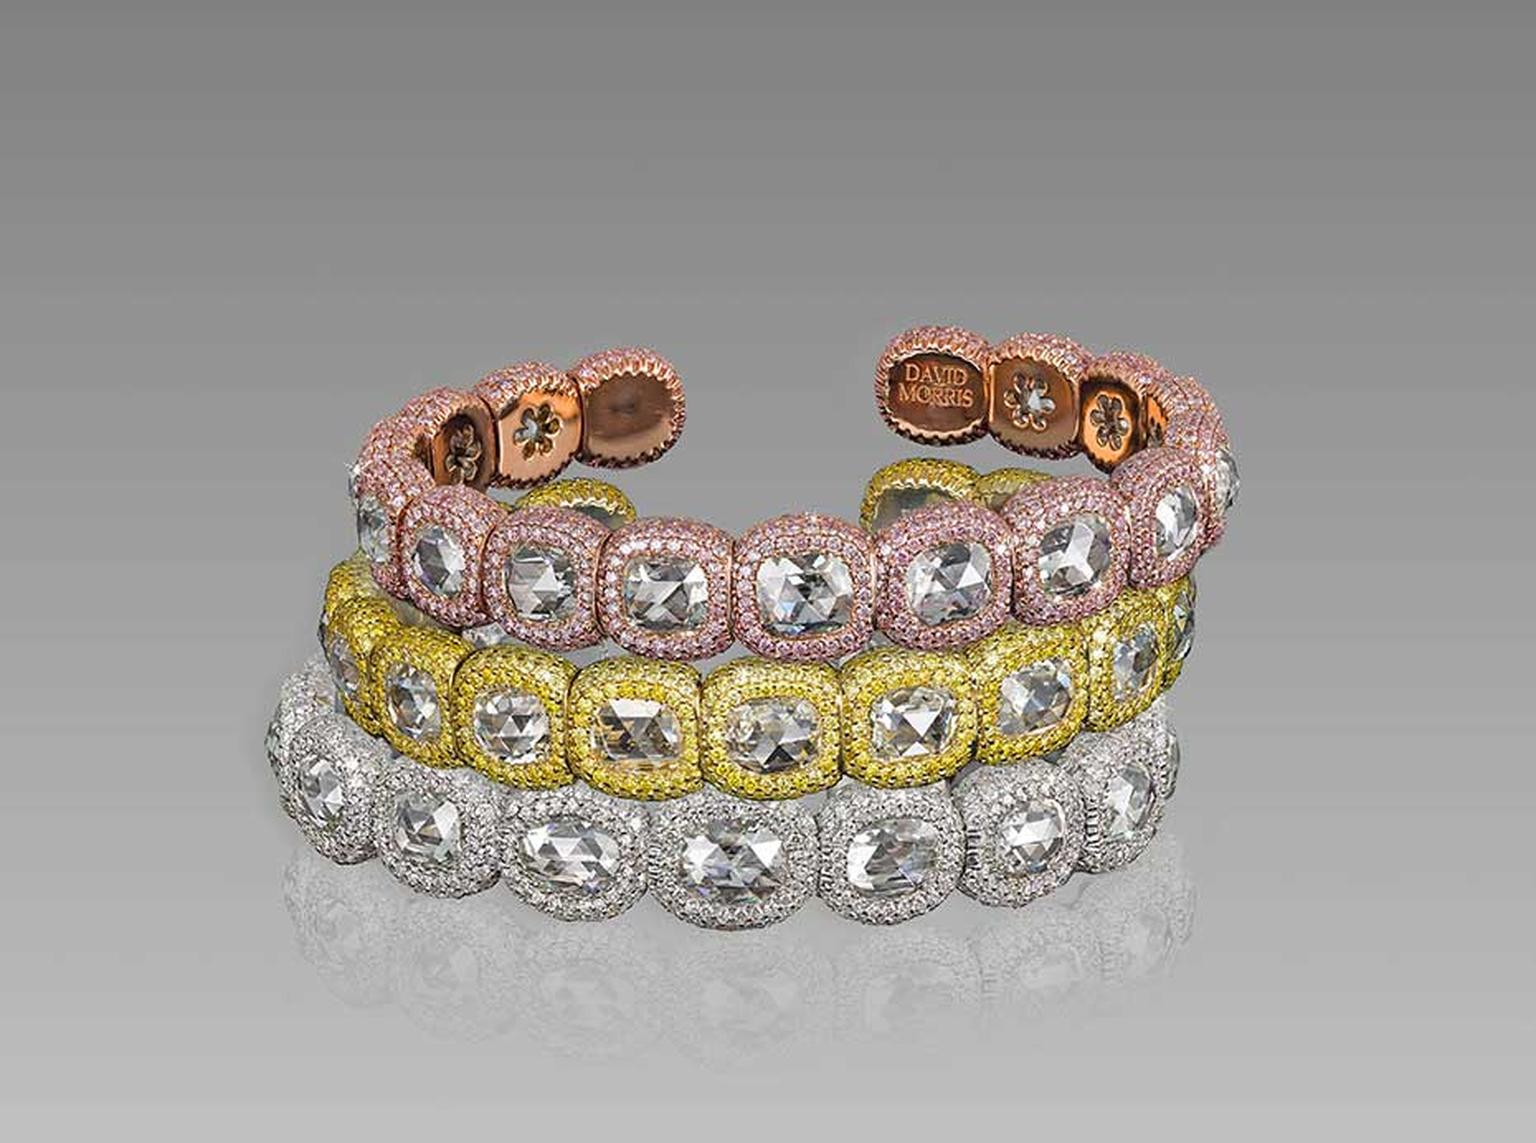 Colourful new bracelets in the David Morris Rose-Cut collection with pavé pink and yellow diamonds surrounding rose-cut diamonds.